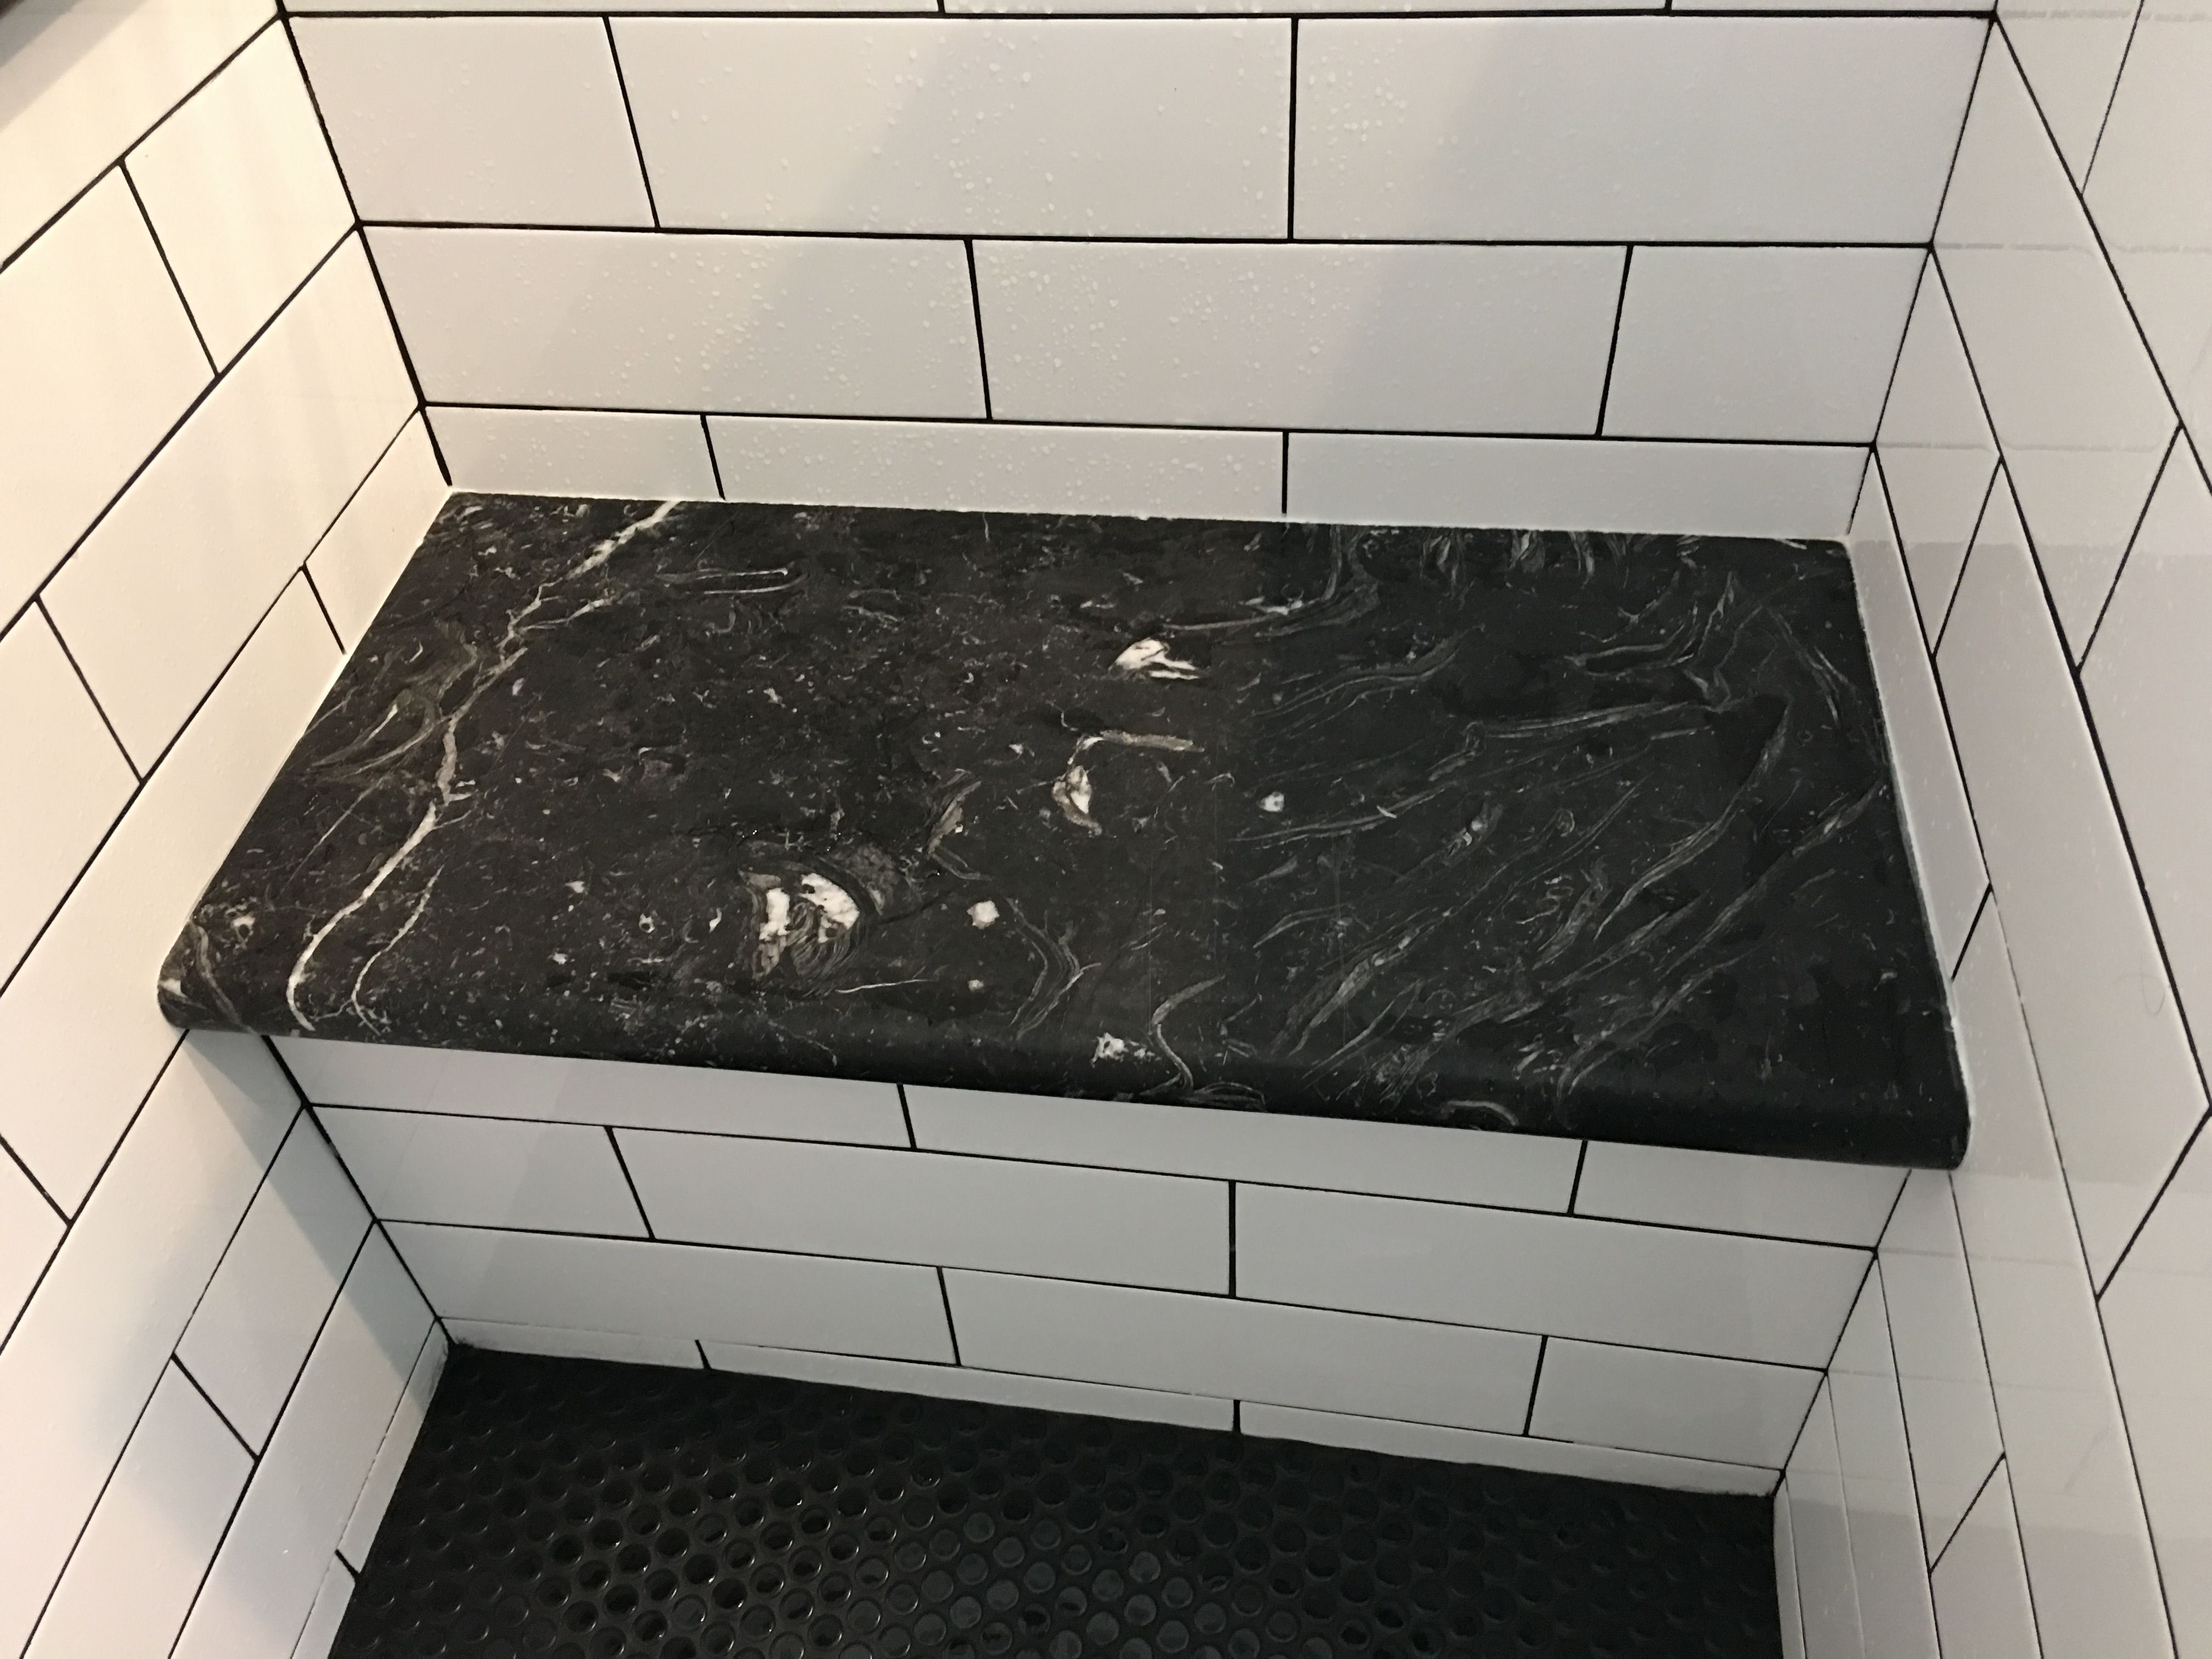 Shower Bench With Marble Seat And Matte Black Penny Round Floor Tile Marble Is Negra Marquina Venato Marble Shower Tile Tile Bathroom Black Tile Bathrooms